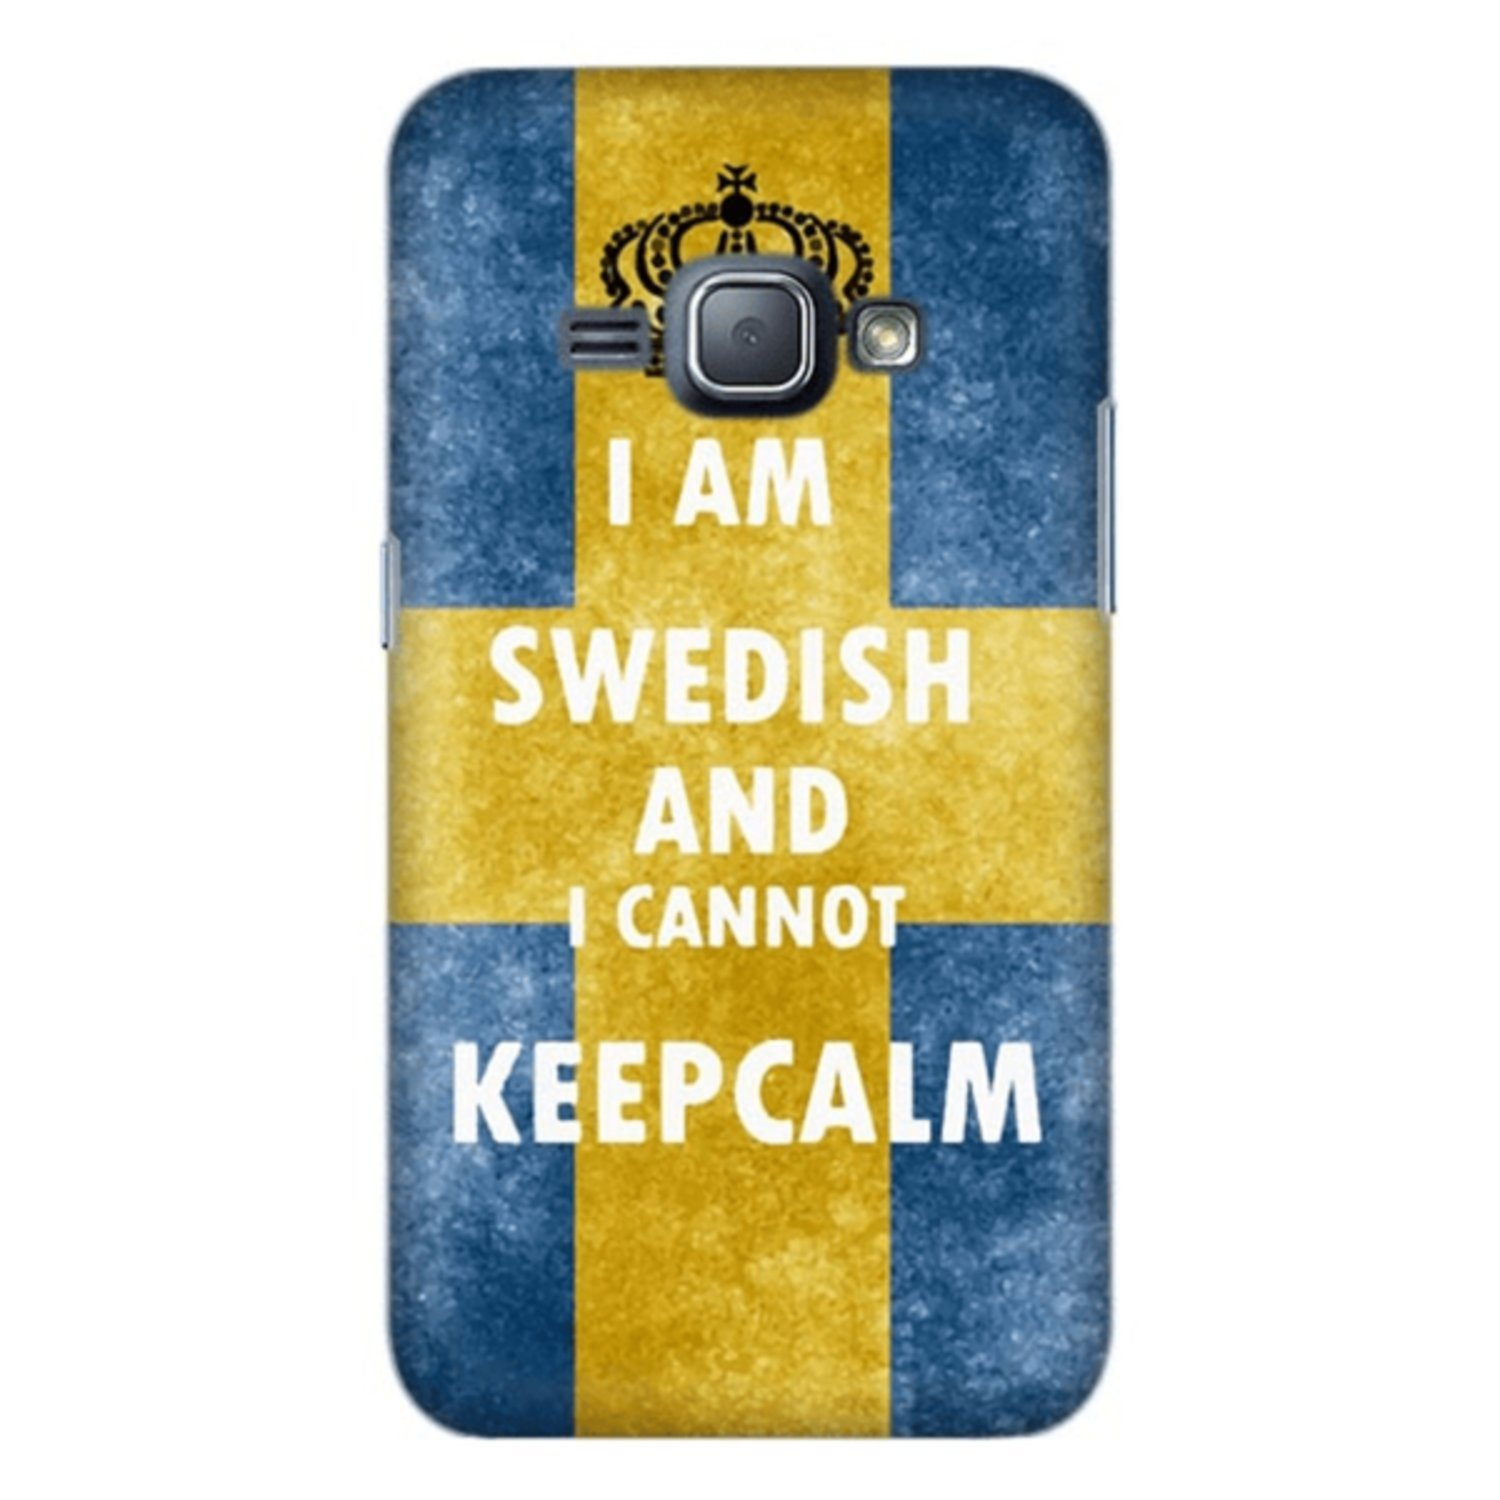 Samsung Galaxy J1 (2016) Skal Keep Calm Swedish